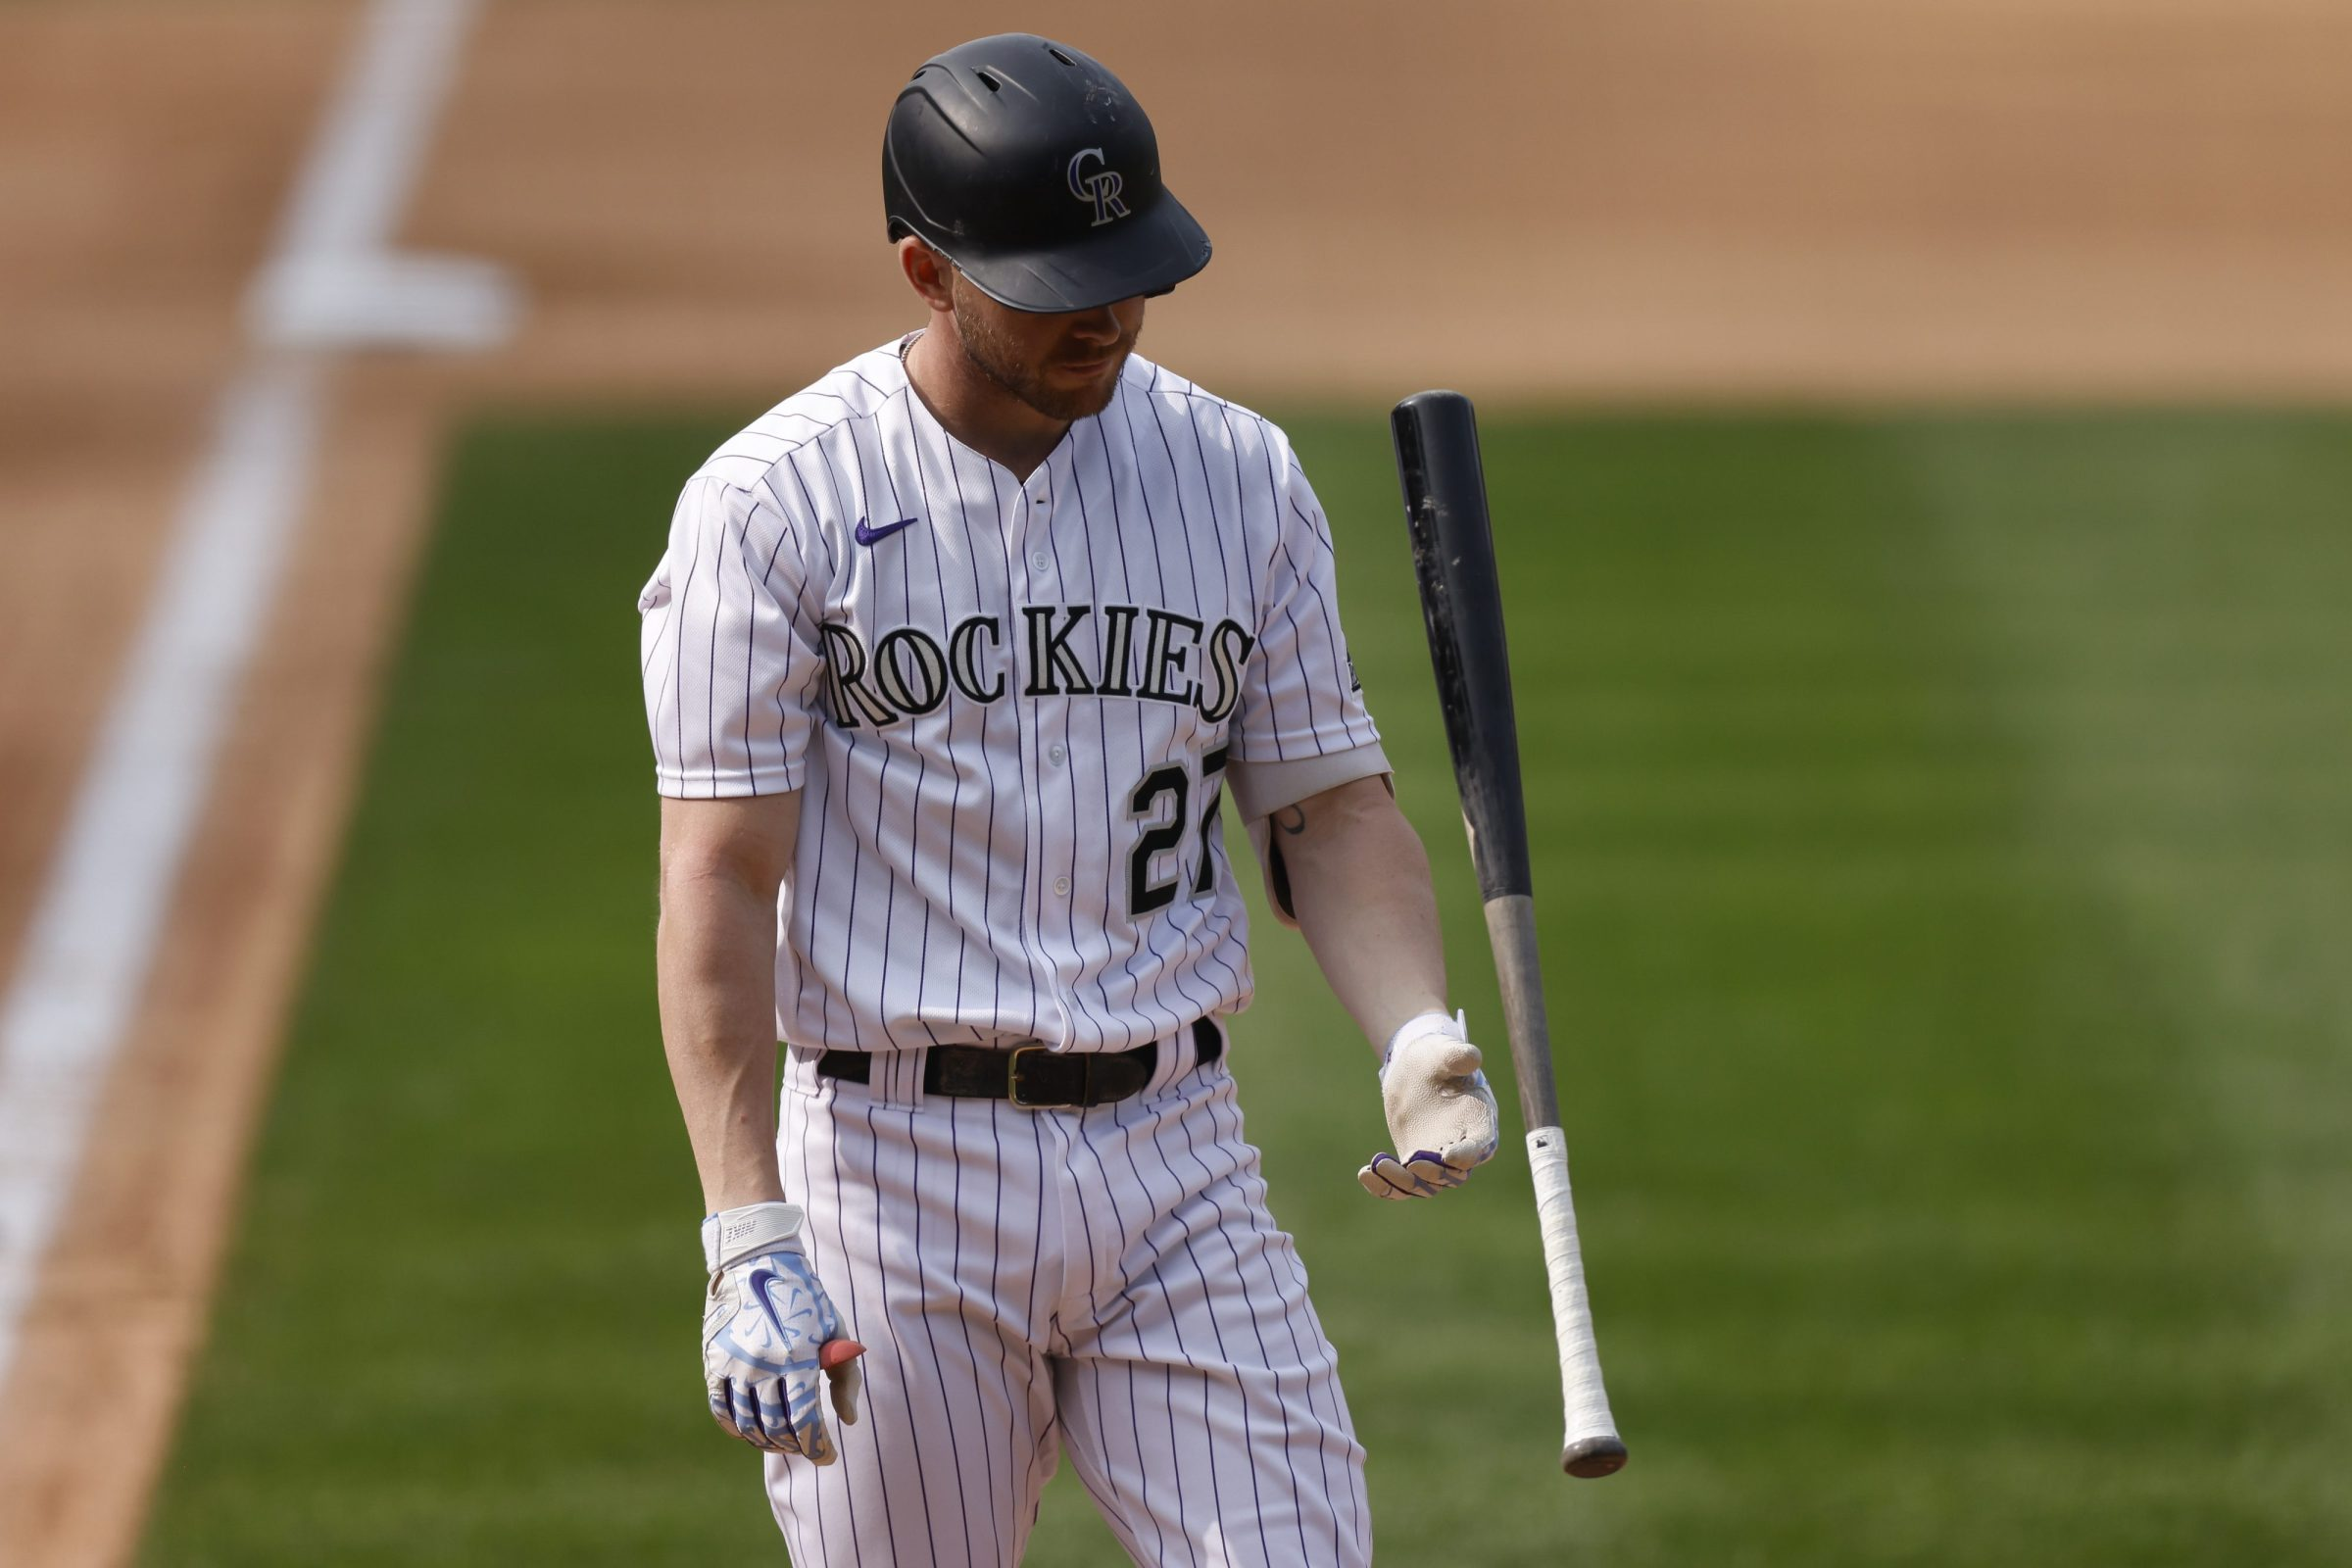 Rockies shortstop Trevor Story discards his bat after striking out.